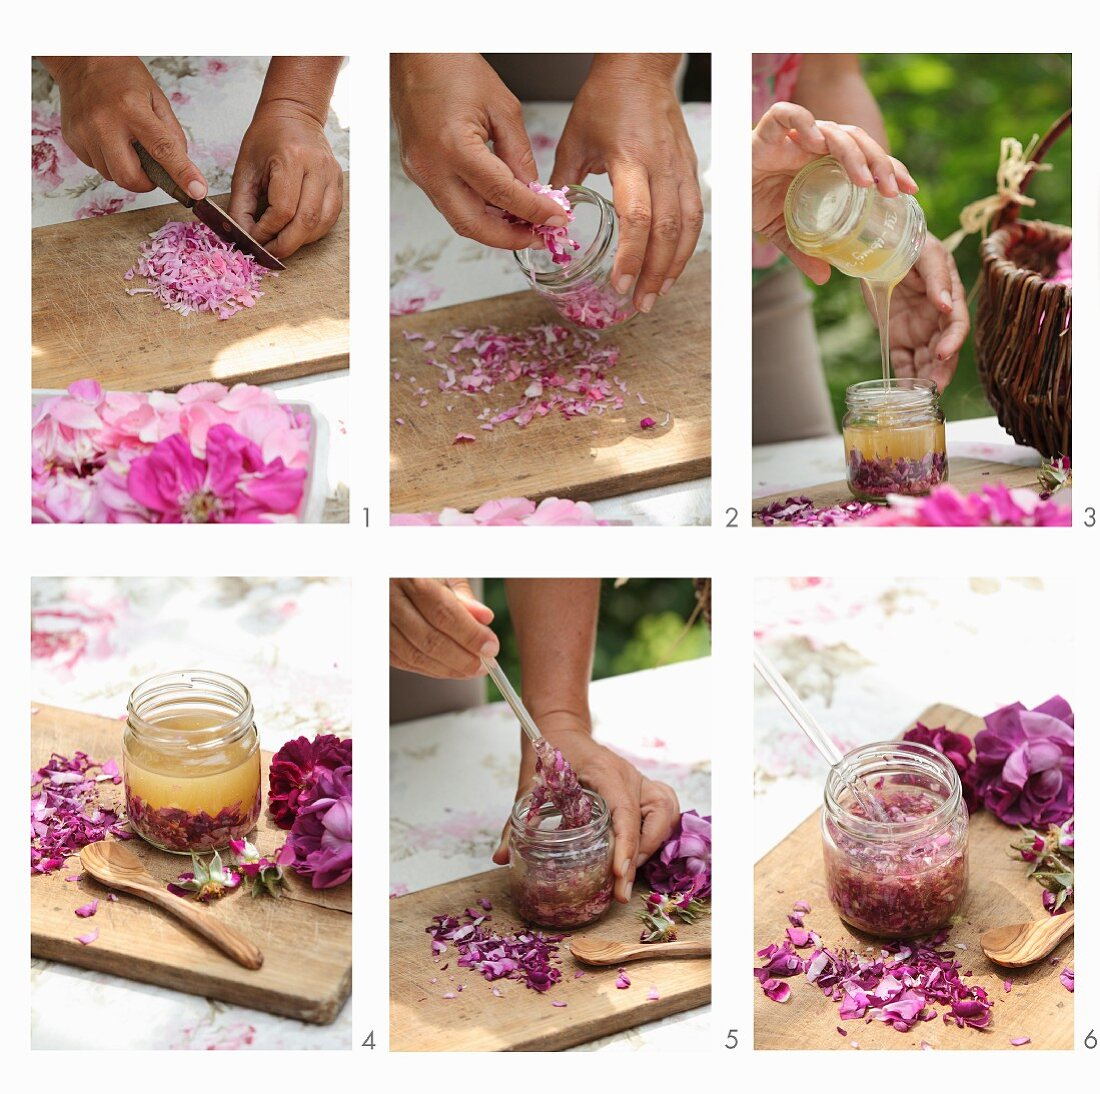 Rose honey being made with honey and rose petals